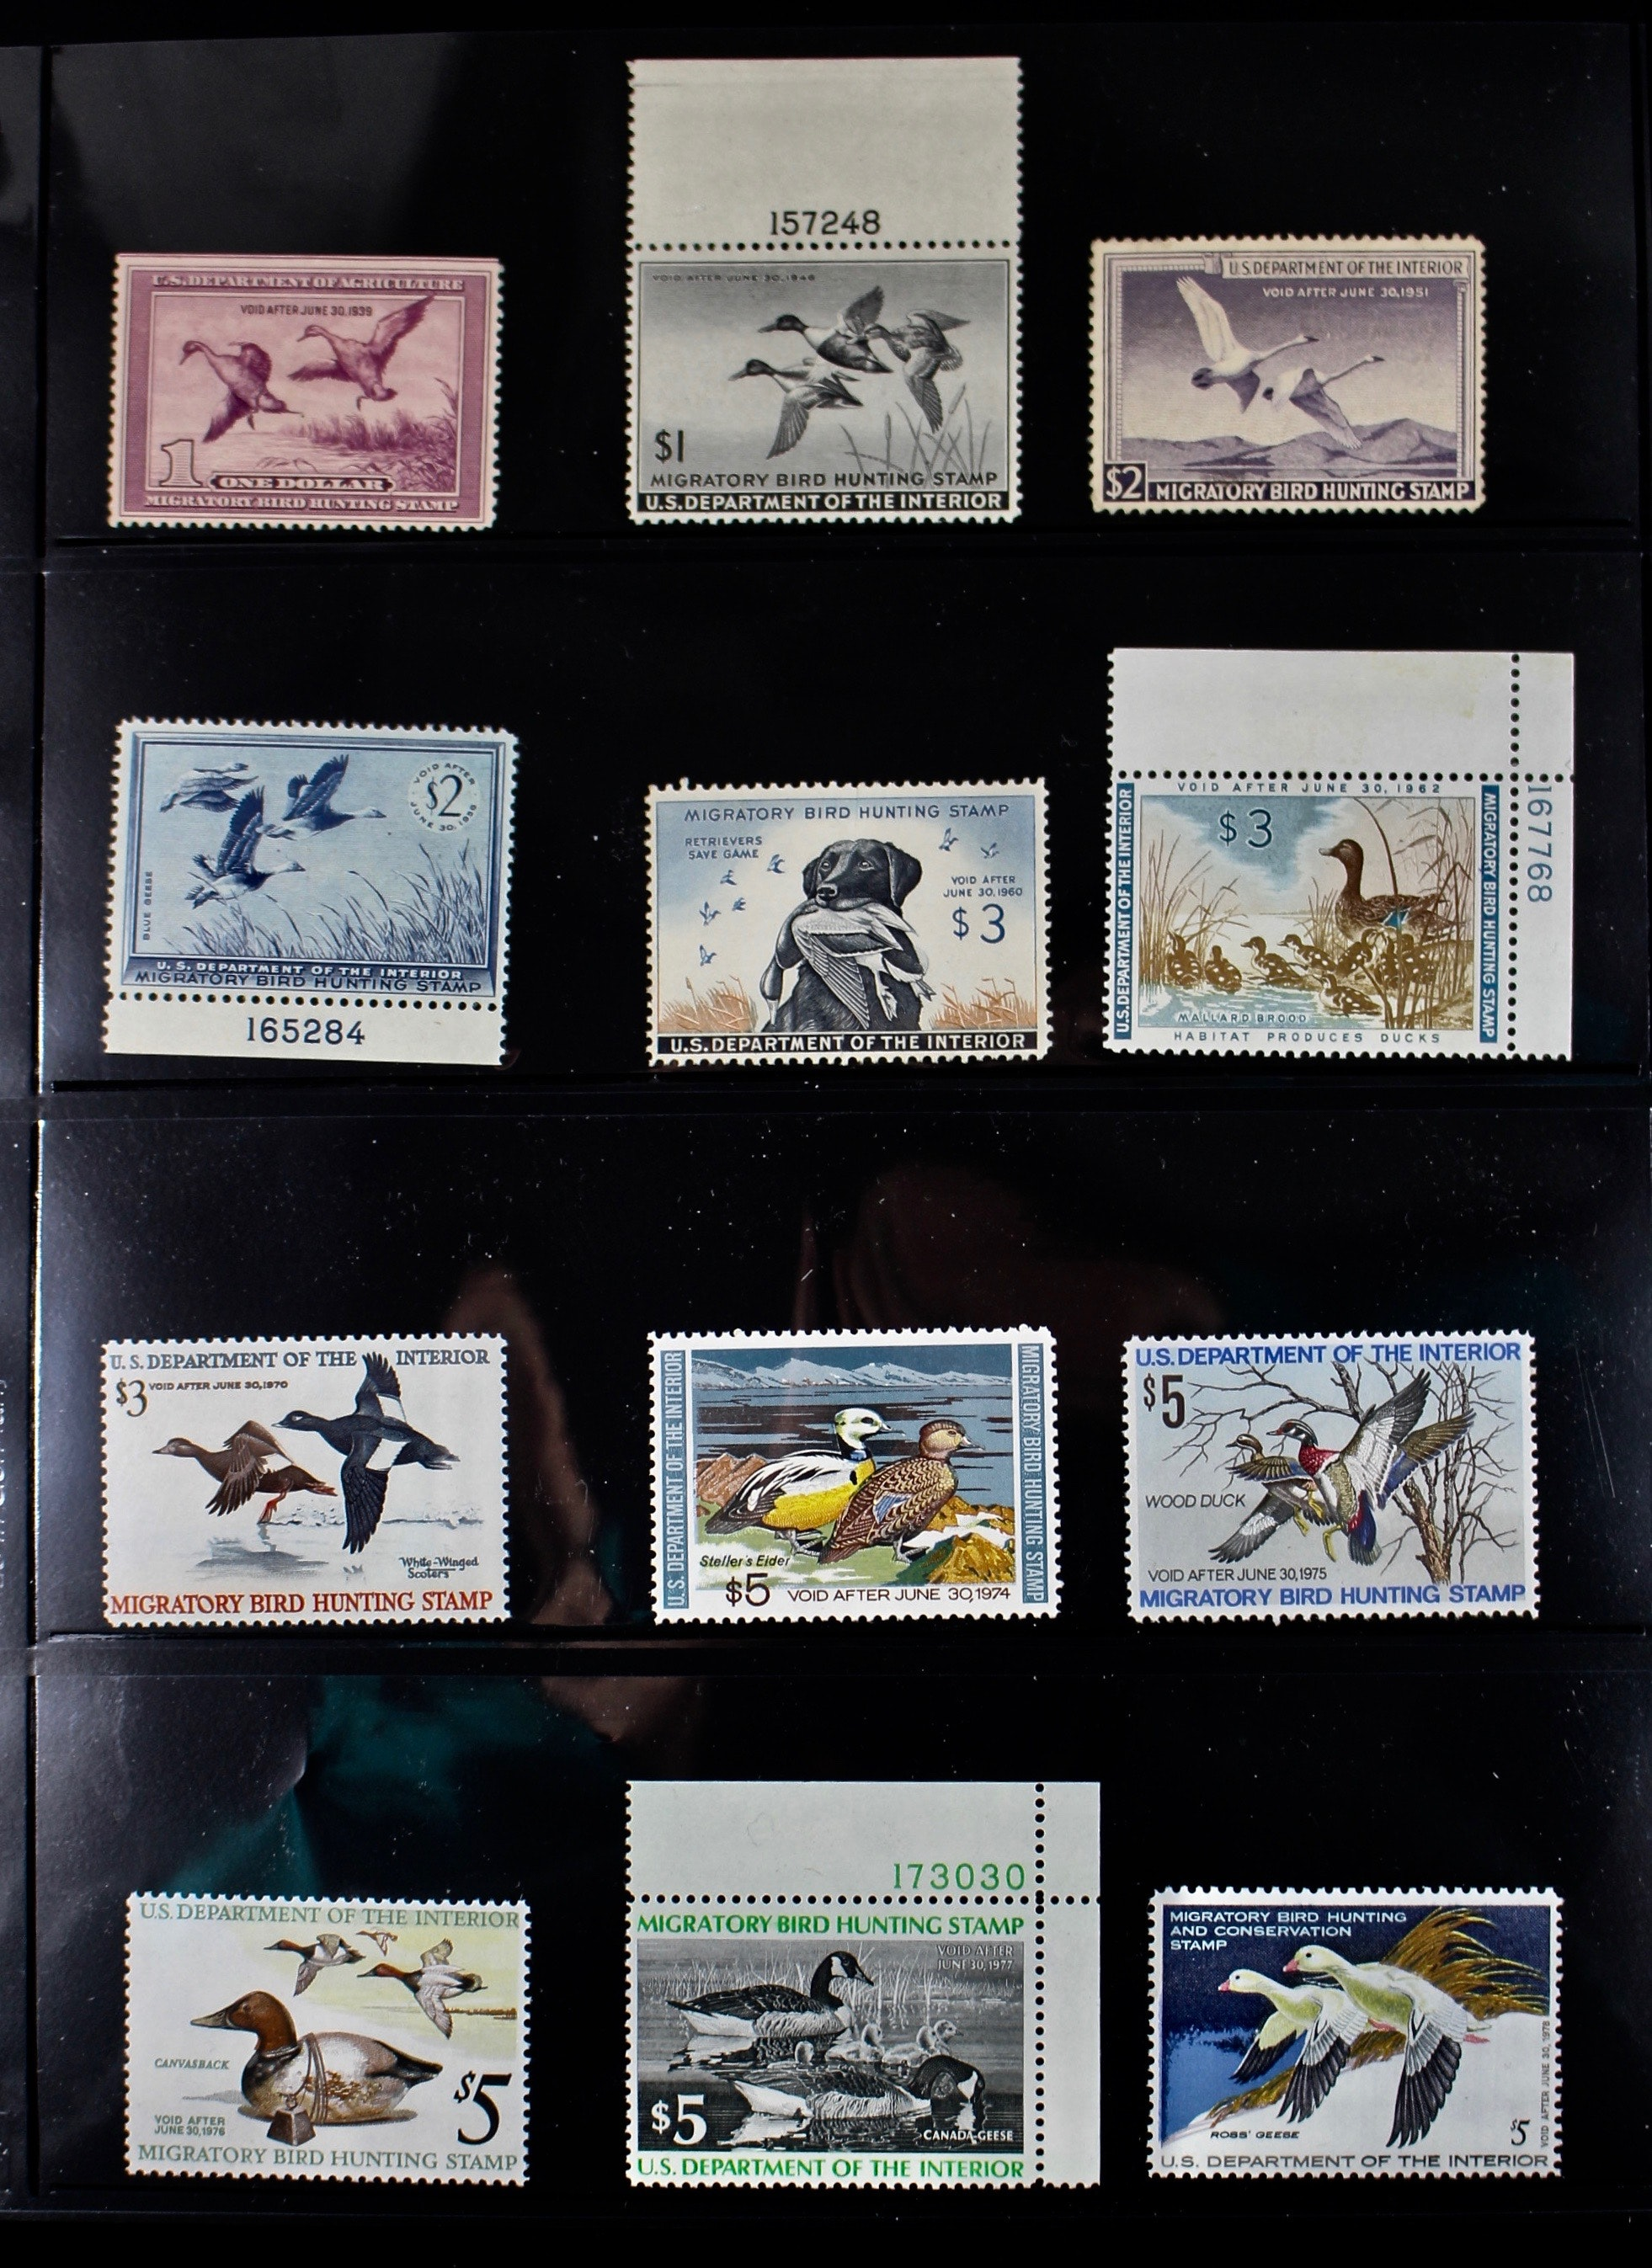 Group of 24 U.S. Department of the Interior Migratory Bird Hunting Stamps